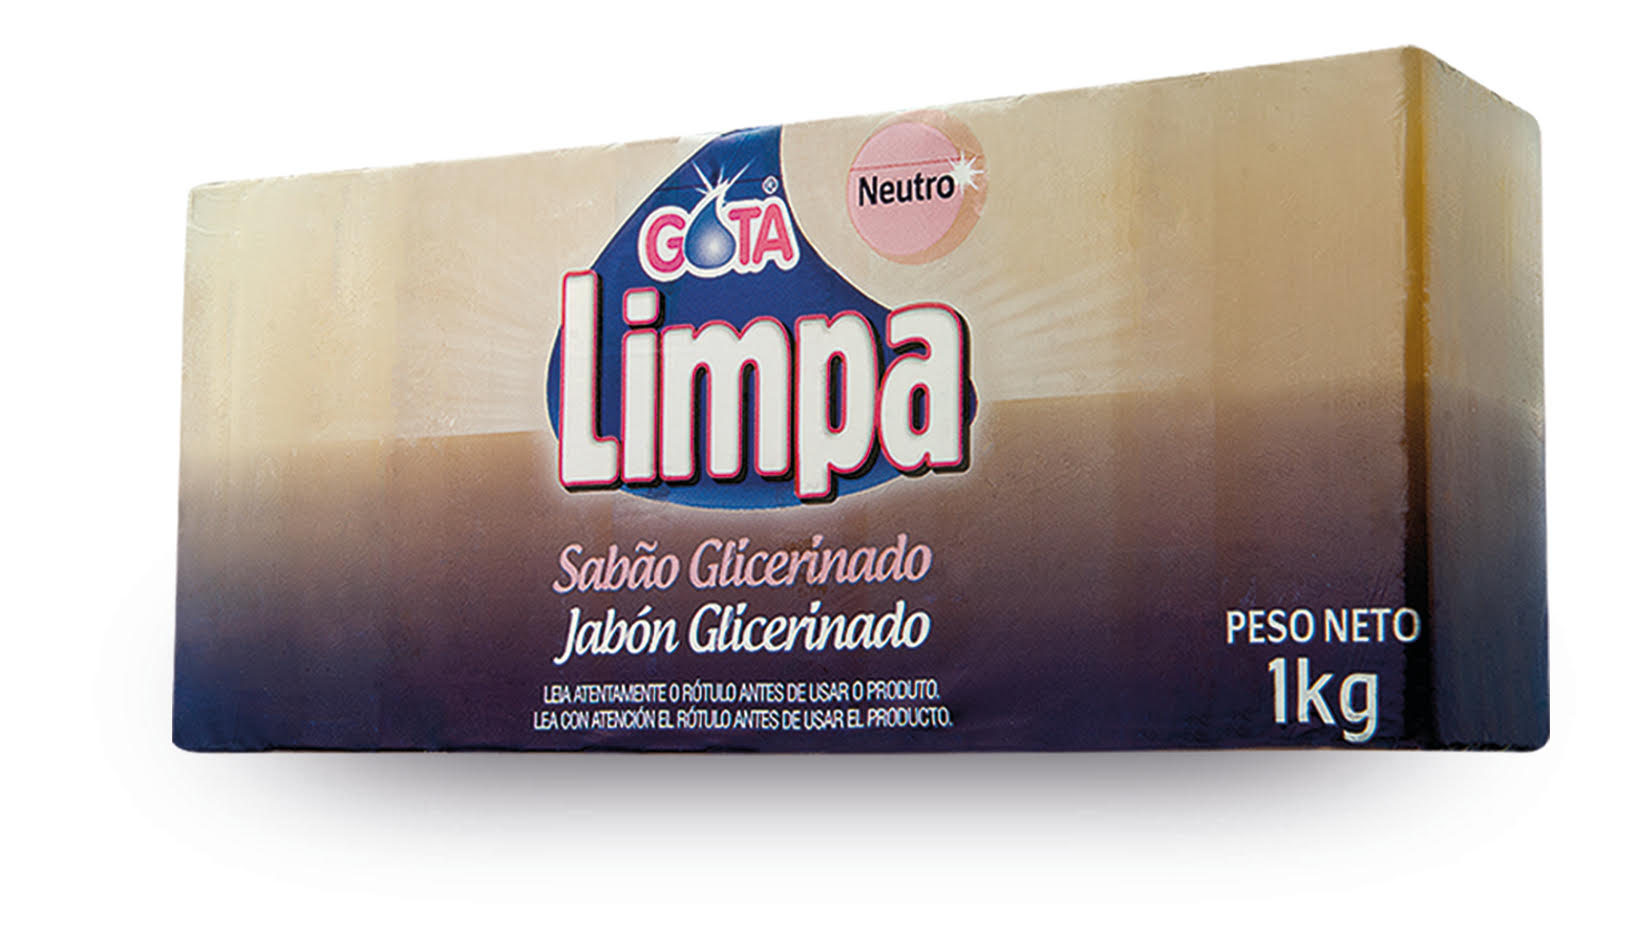 Gota Limpa neutral soap